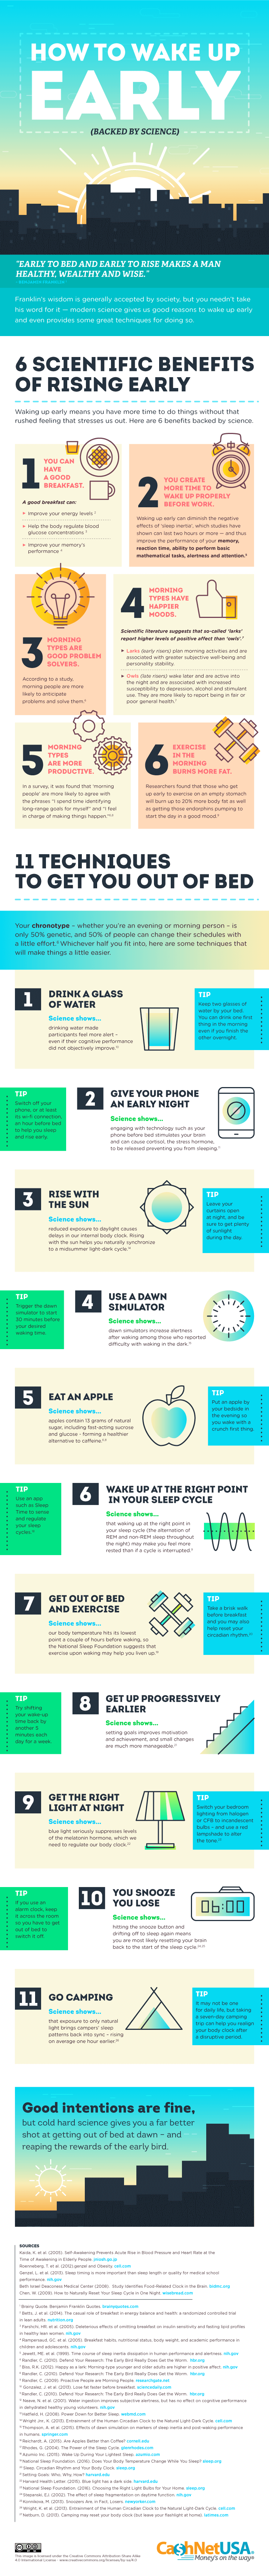 The Many Benefits of Waking Up Early - Infographic